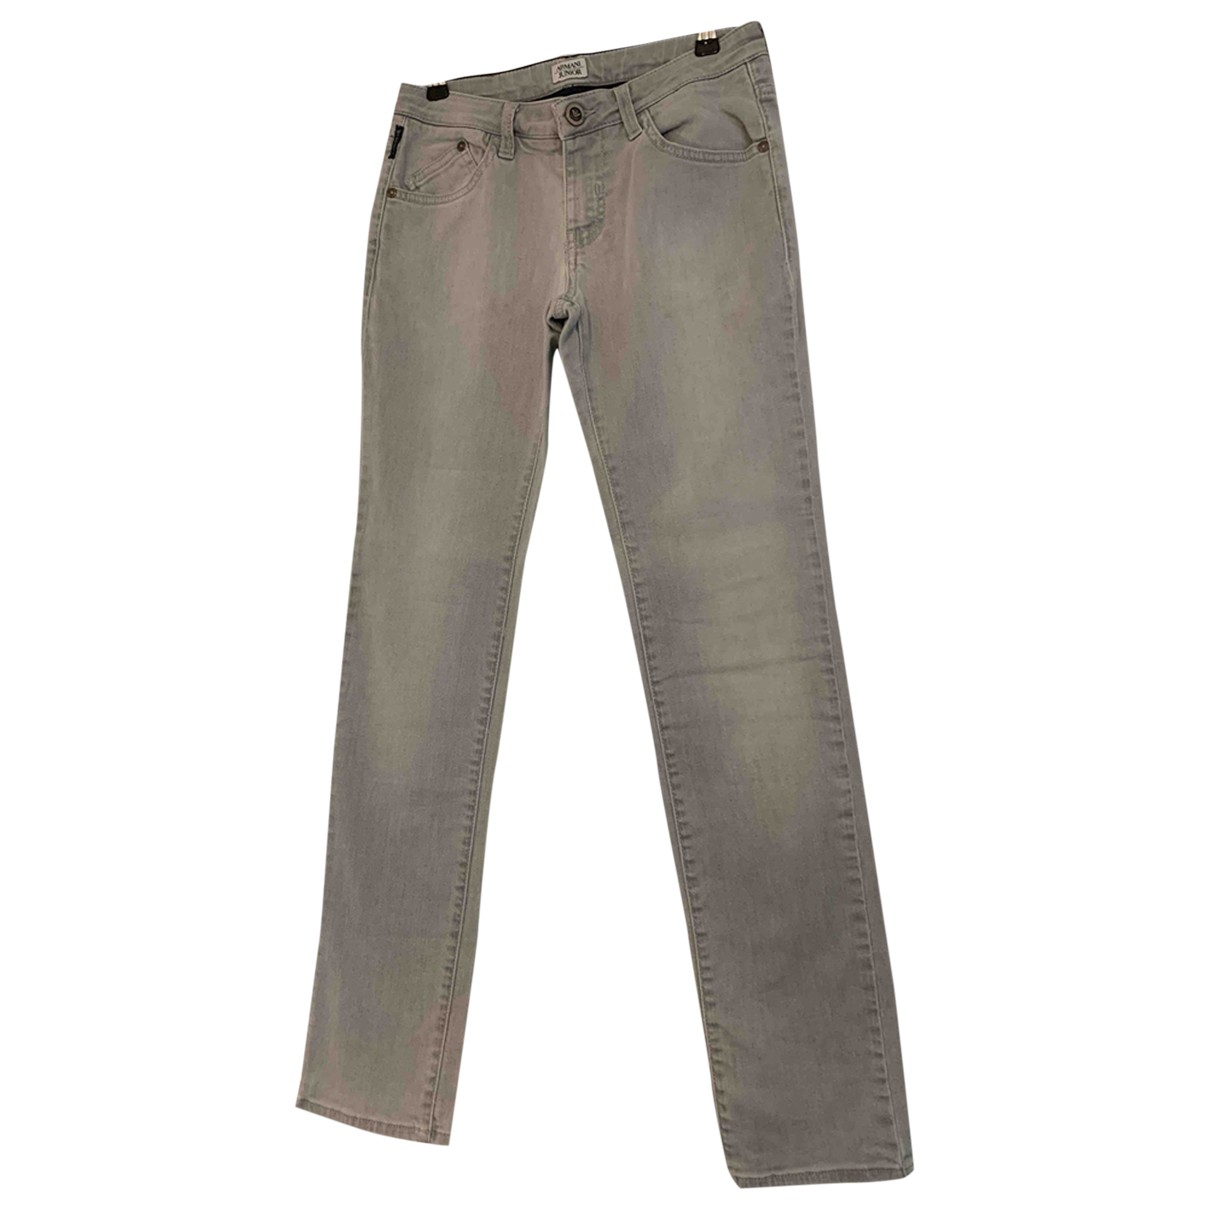 Armani Jeans N Grey Denim - Jeans Trousers for Kids 12 years - XS UK